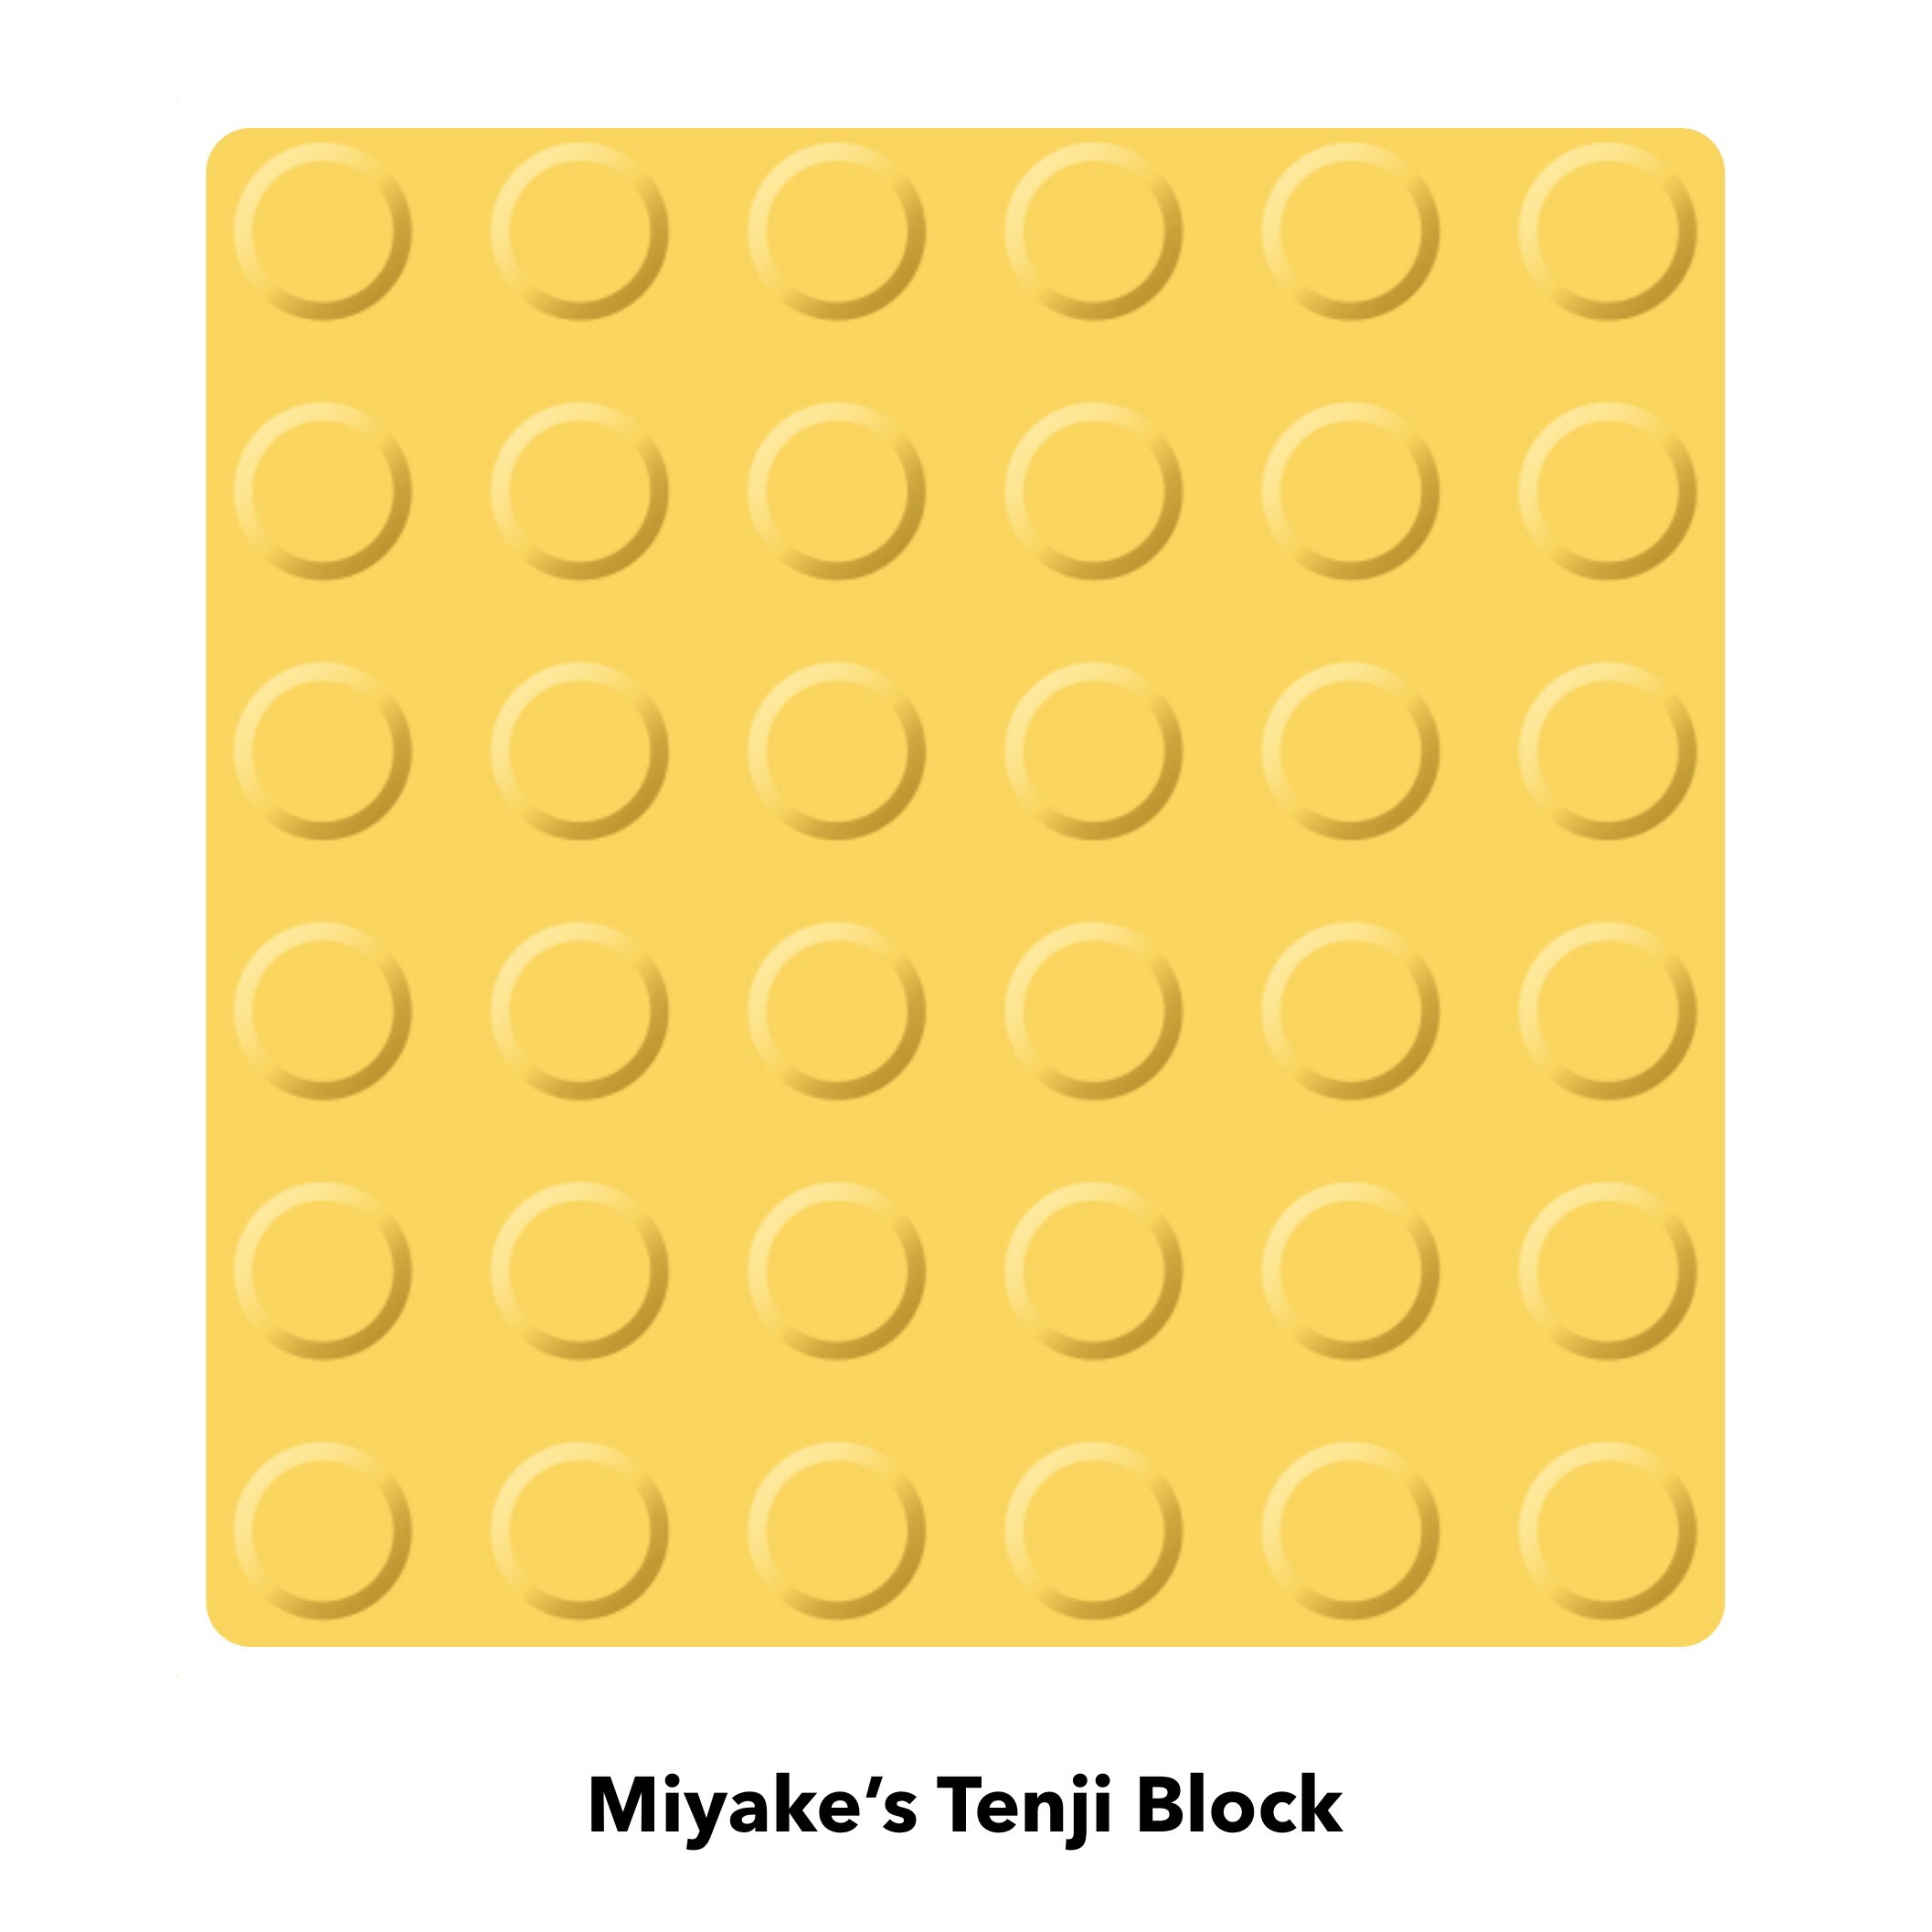 The original model for the Tenji Block. It is a yellow square with raised domes.